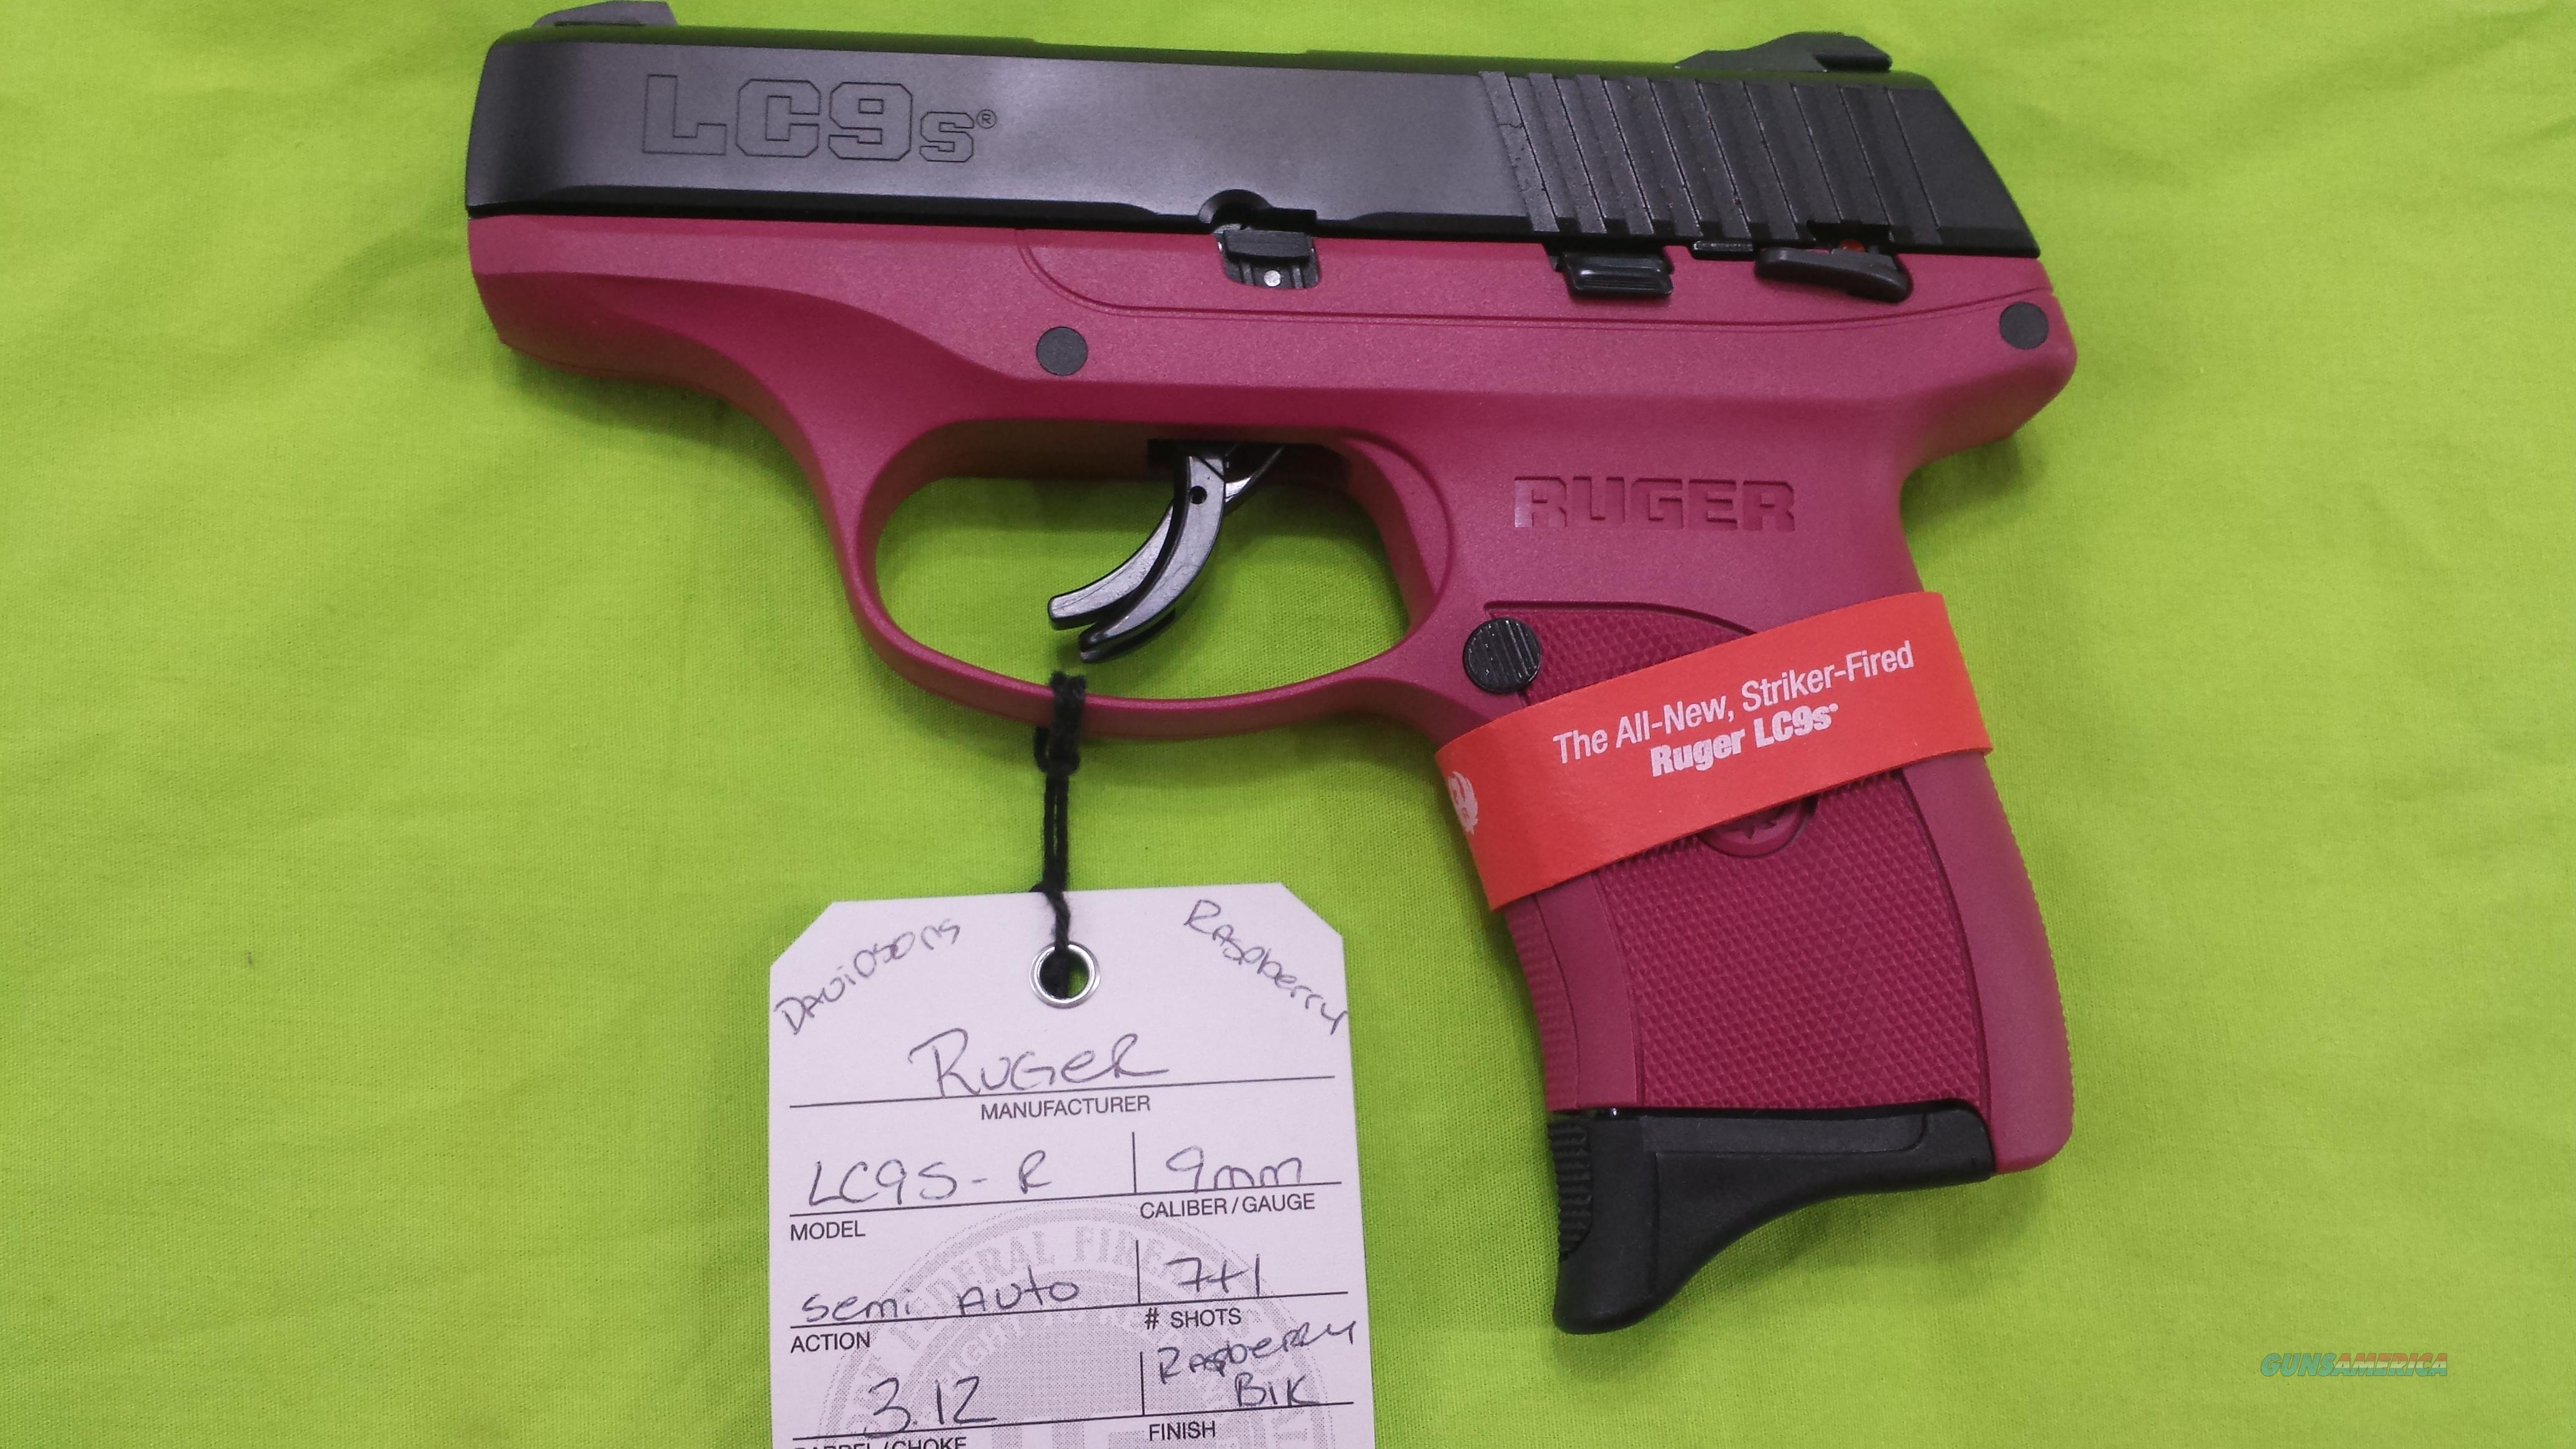 LADIES PINK RUGER LC9S 9 MM 9MM 7RD RASPBERRY LC9  Guns > Pistols > Ruger Semi-Auto Pistols > LC9